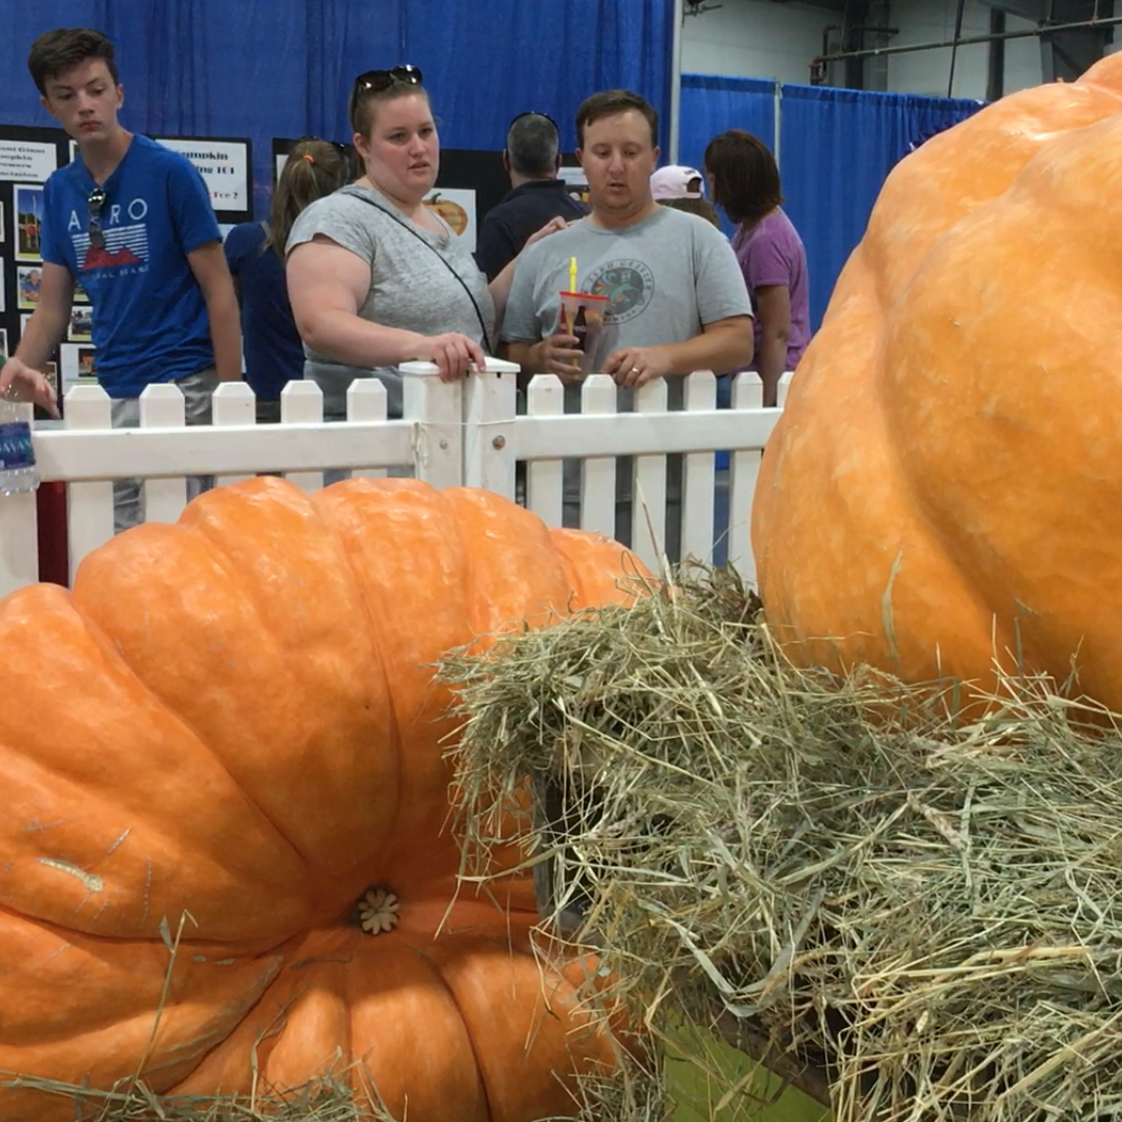 Giant pumpkins: Vermont growers on continual quest for record sizes